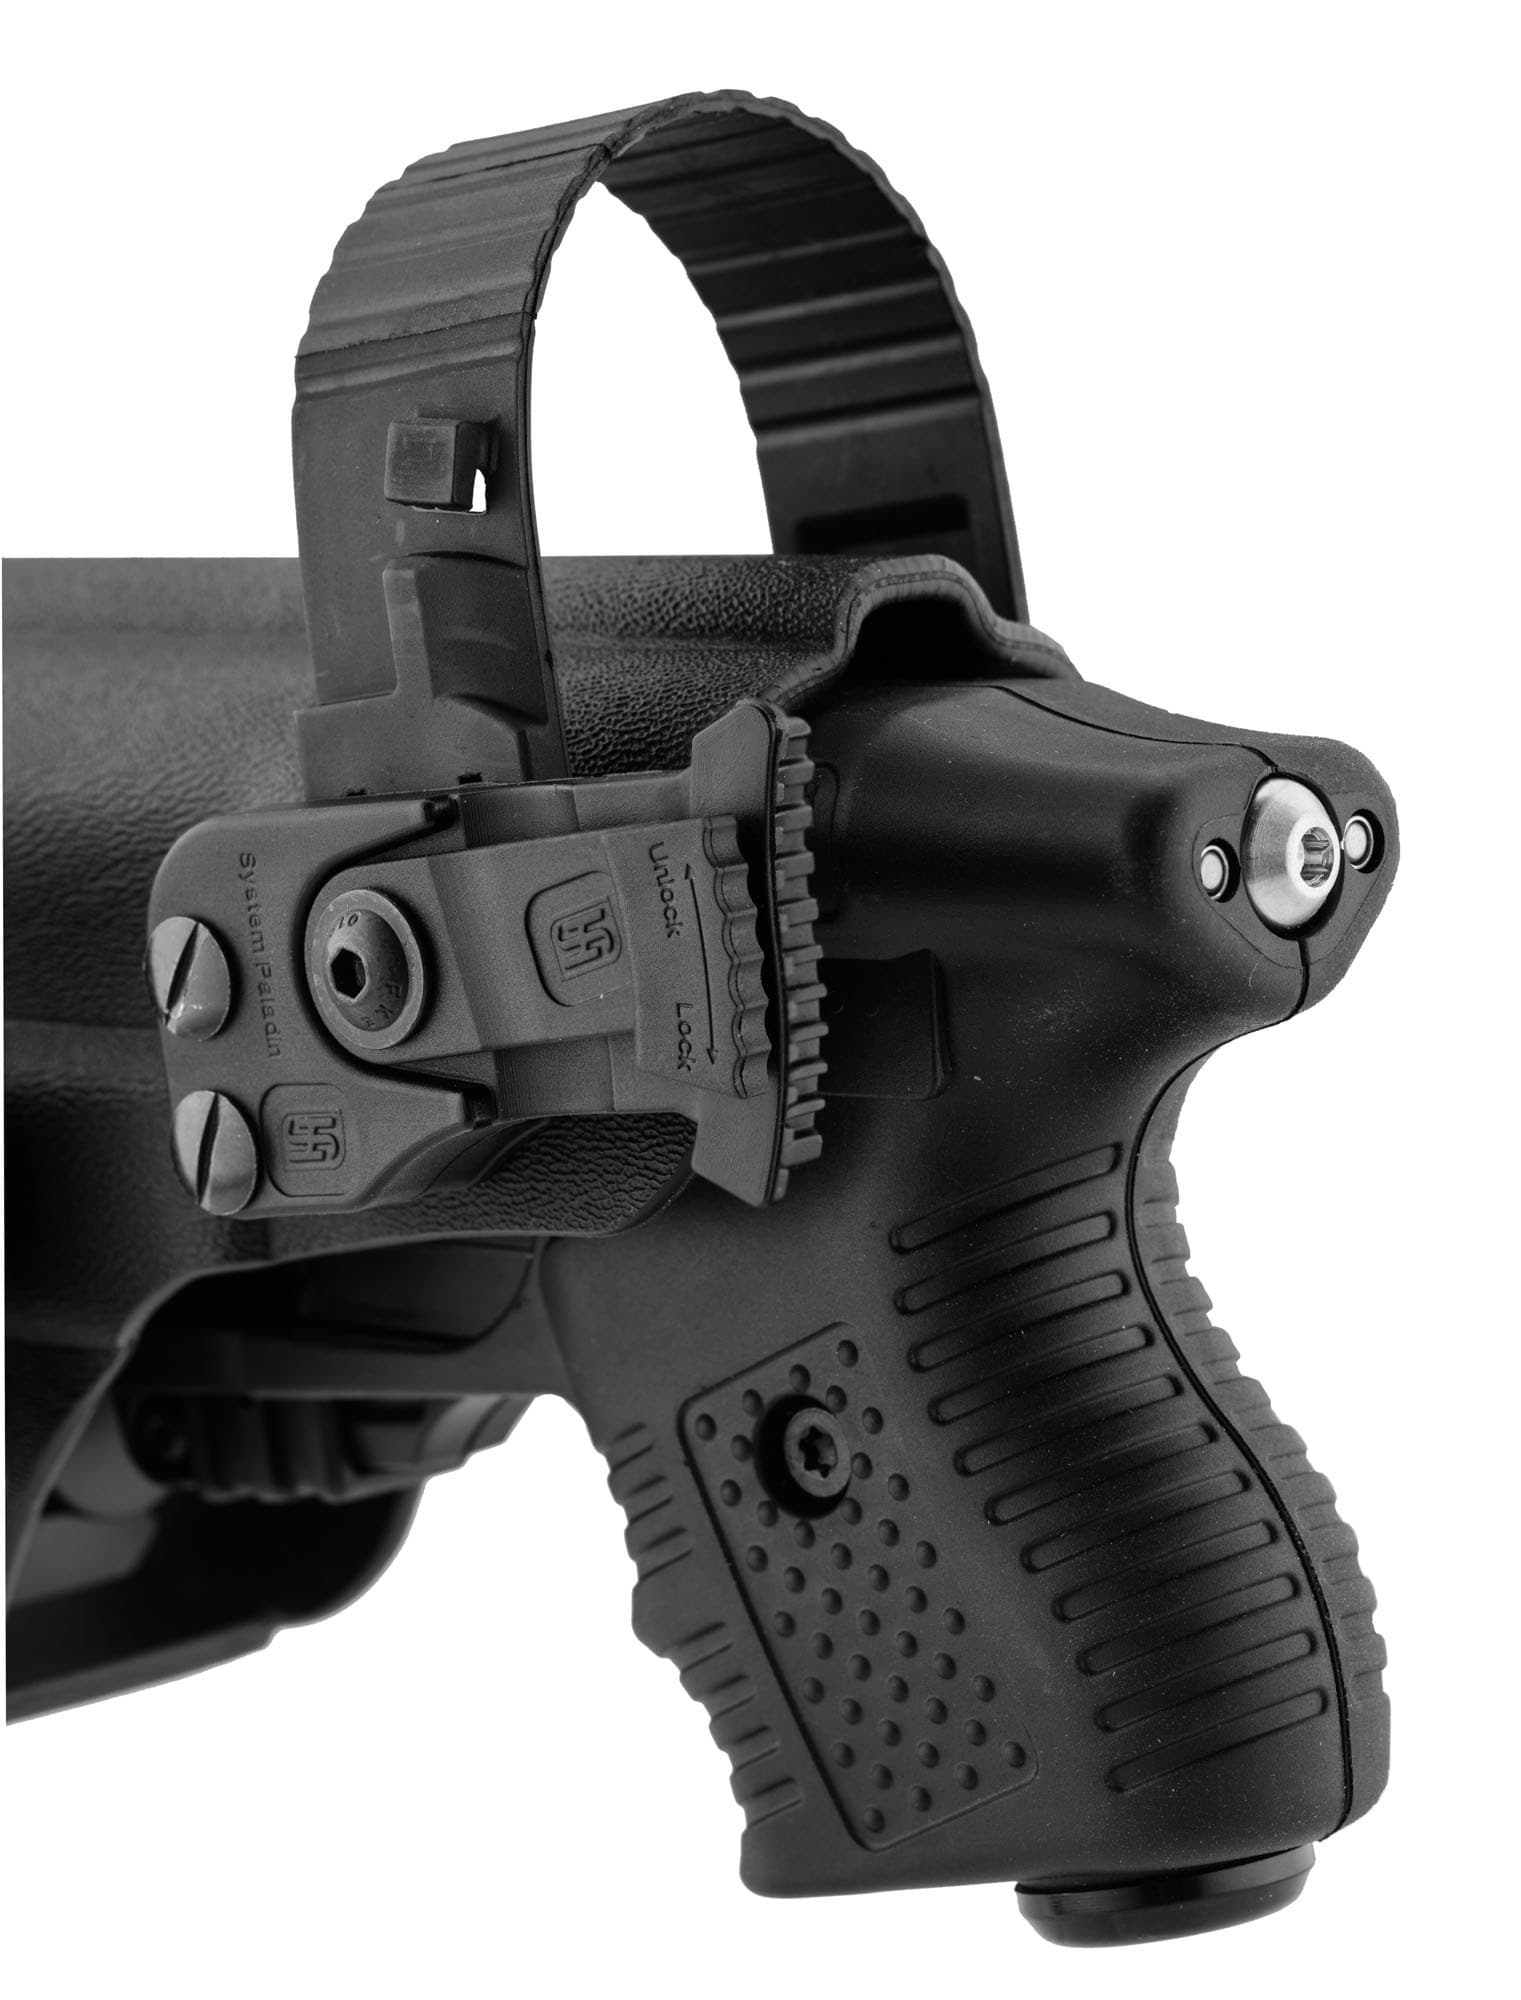 JPX390-7-Holster pour JPX - Kydex Paladin II avec lampe tactique - JPX400